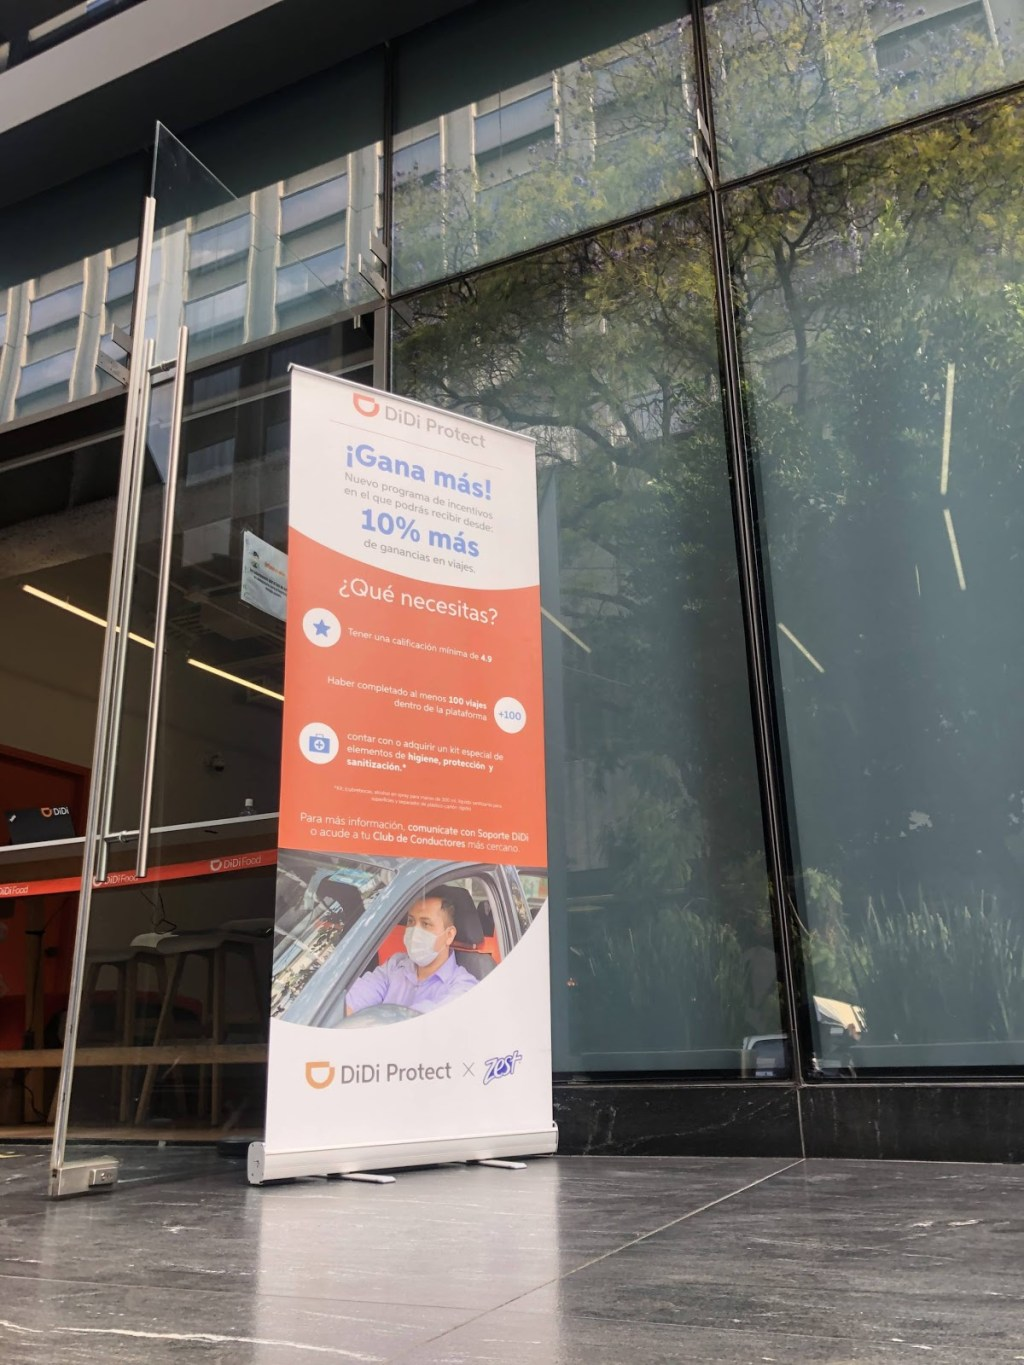 DiDi delivery worker recruitment promotion banner outside venue